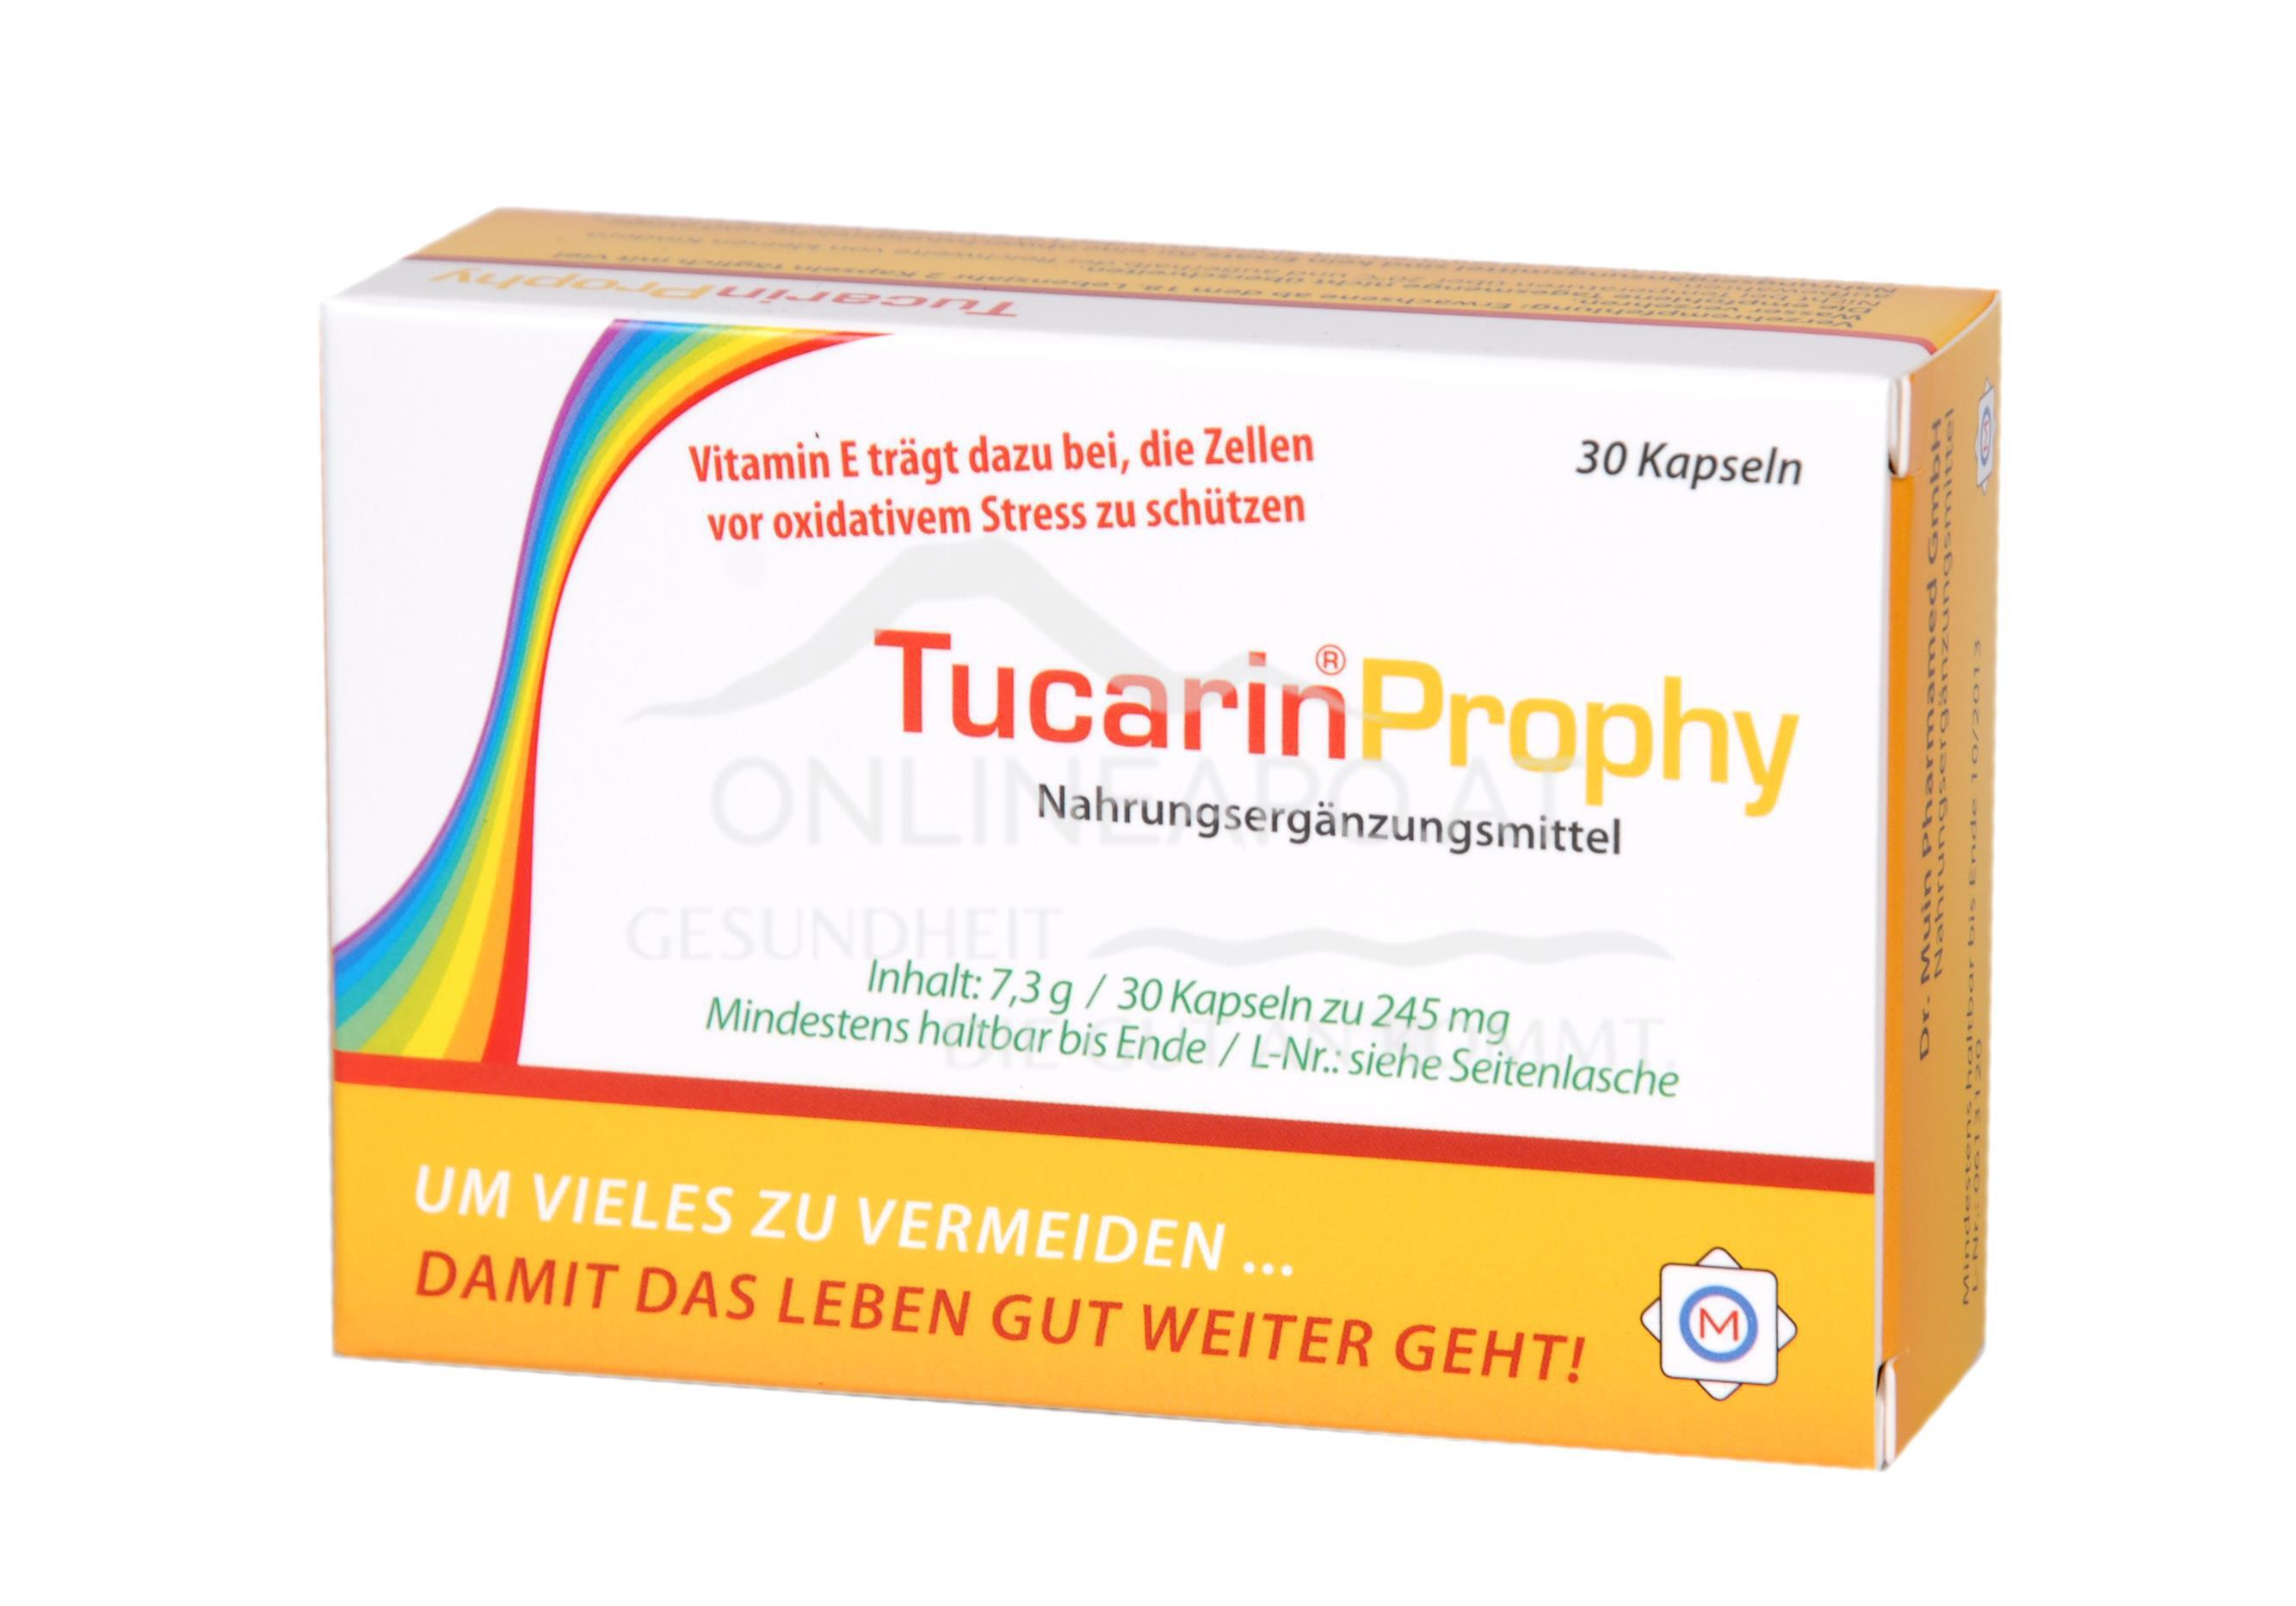 Tucarin Prophy